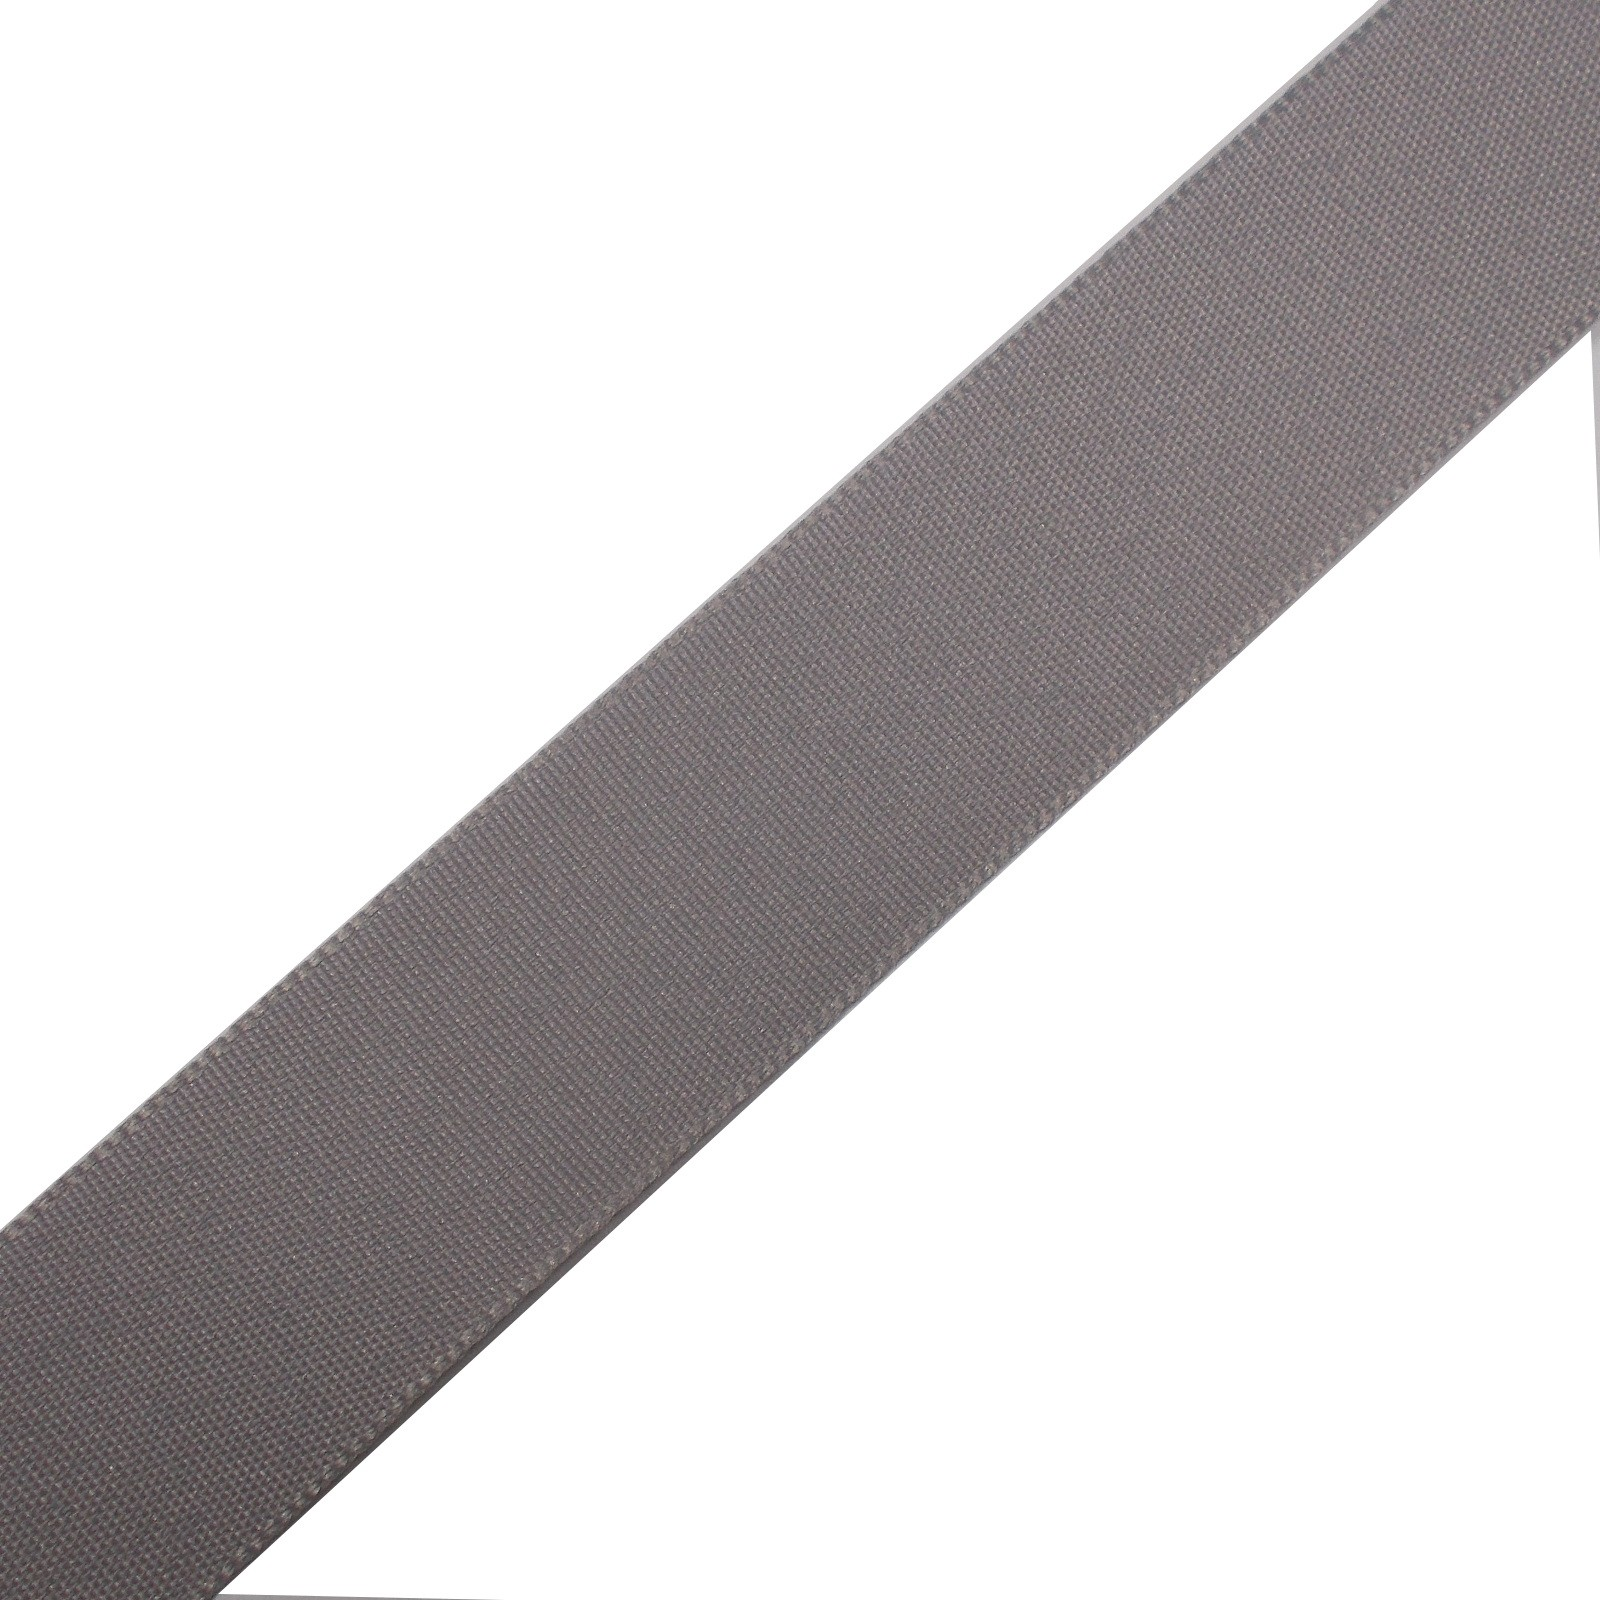 Berisfords Seam Binding Polyester Ribbon Tape 12mm wide Light Grey 2 metre length